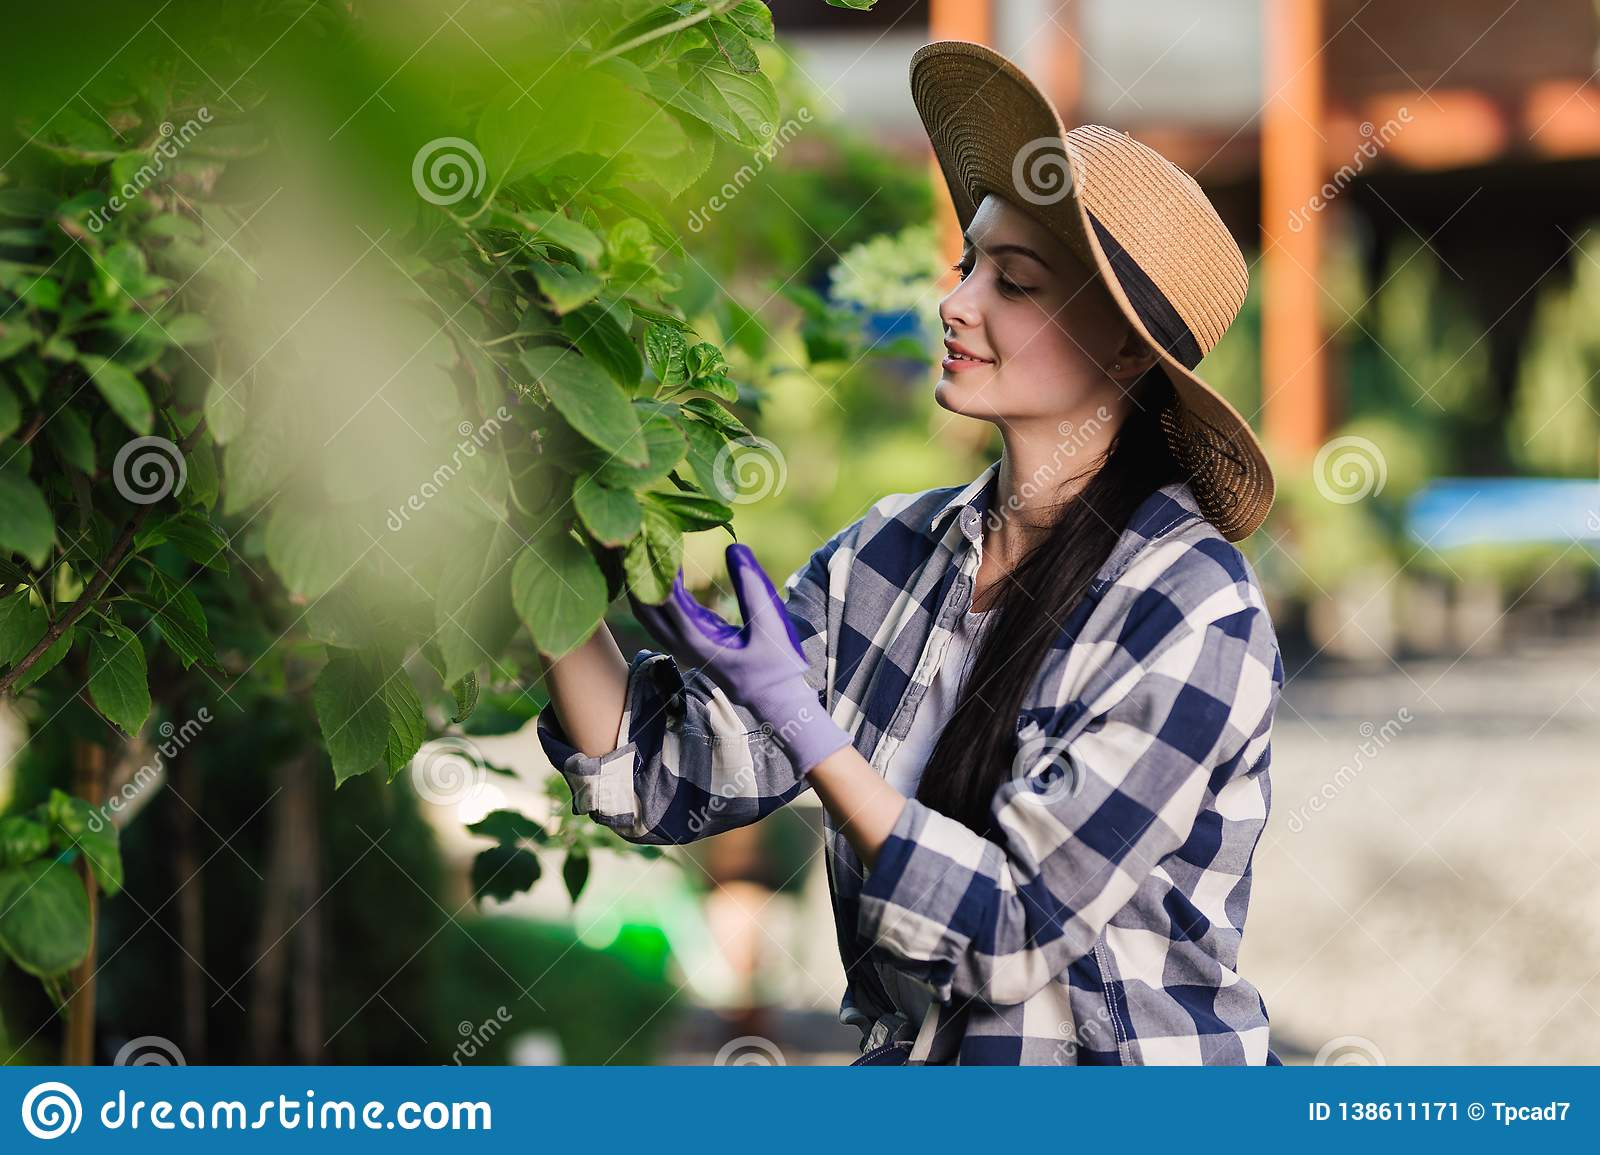 Beautiful young woman in checkered shirt and straw hat gardening outside at summer day